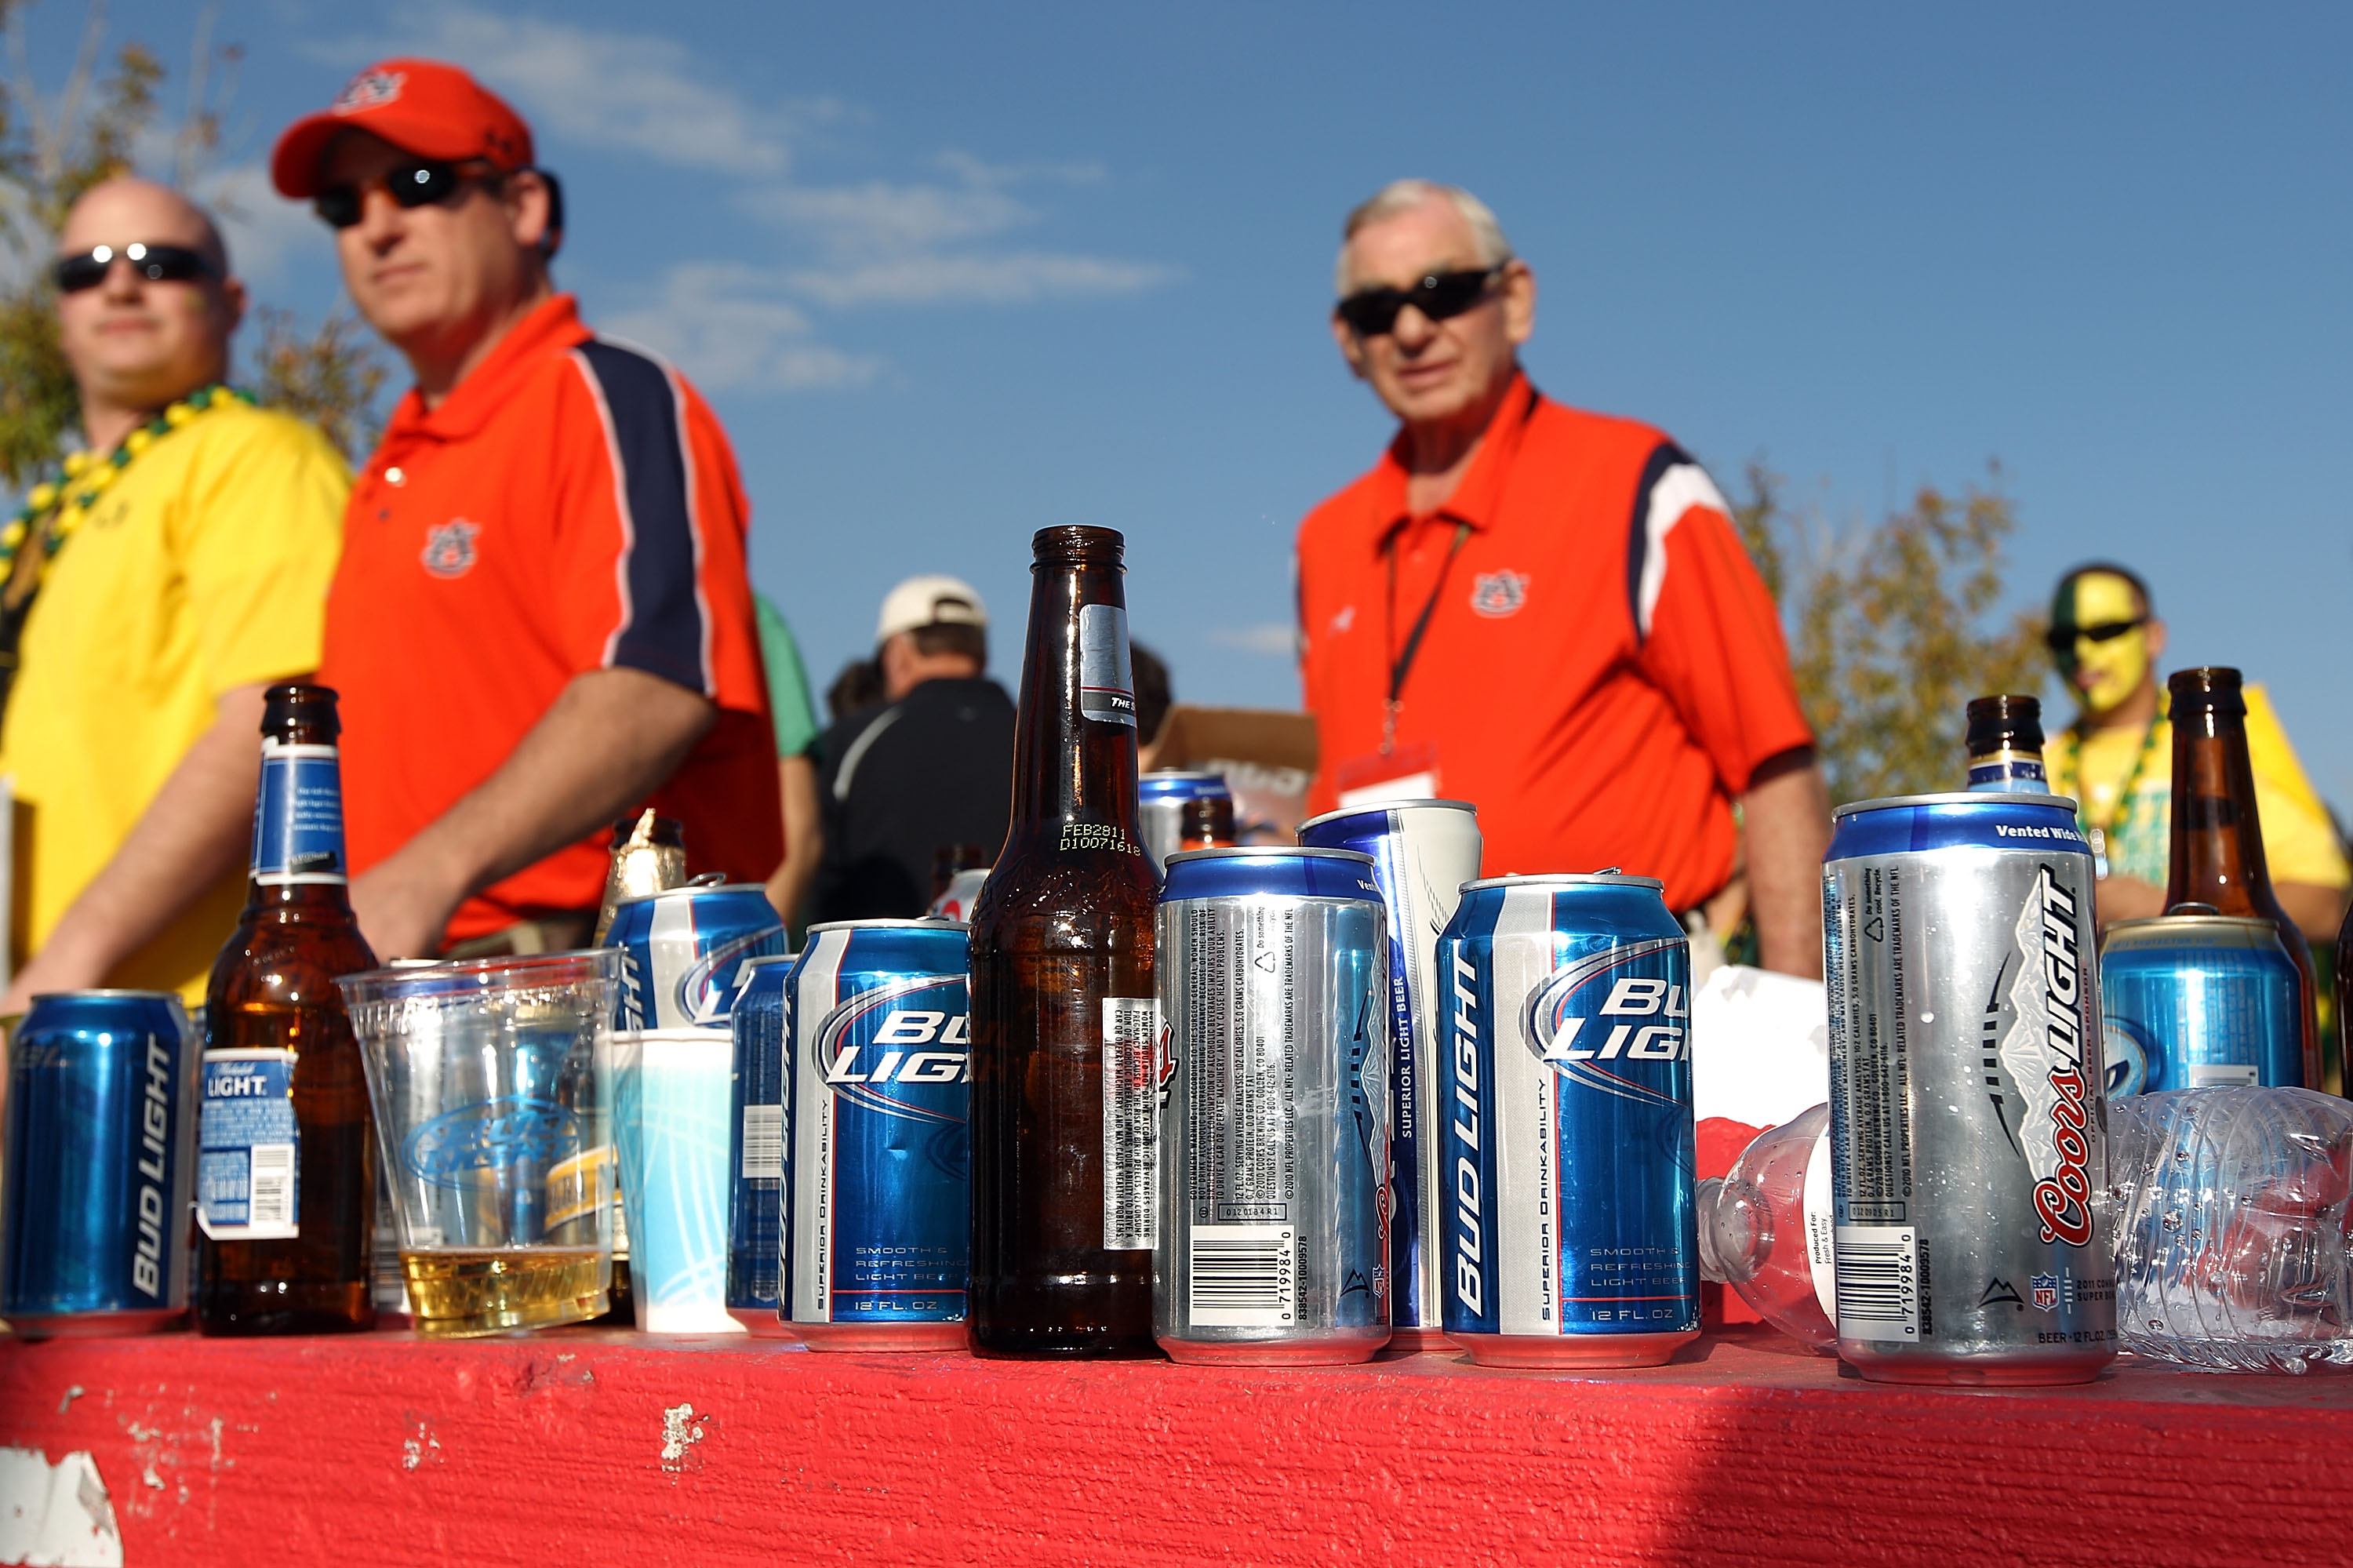 GLENDALE, AZ - JANUARY 10:  Fans walk by the alcohol collection table before the Tostitos BCS National Championship Game between the Oregon Ducks and the Auburn Tigers at University of Phoenix Stadium on January 10, 2011 in Glendale, Arizona.  (Photo by C